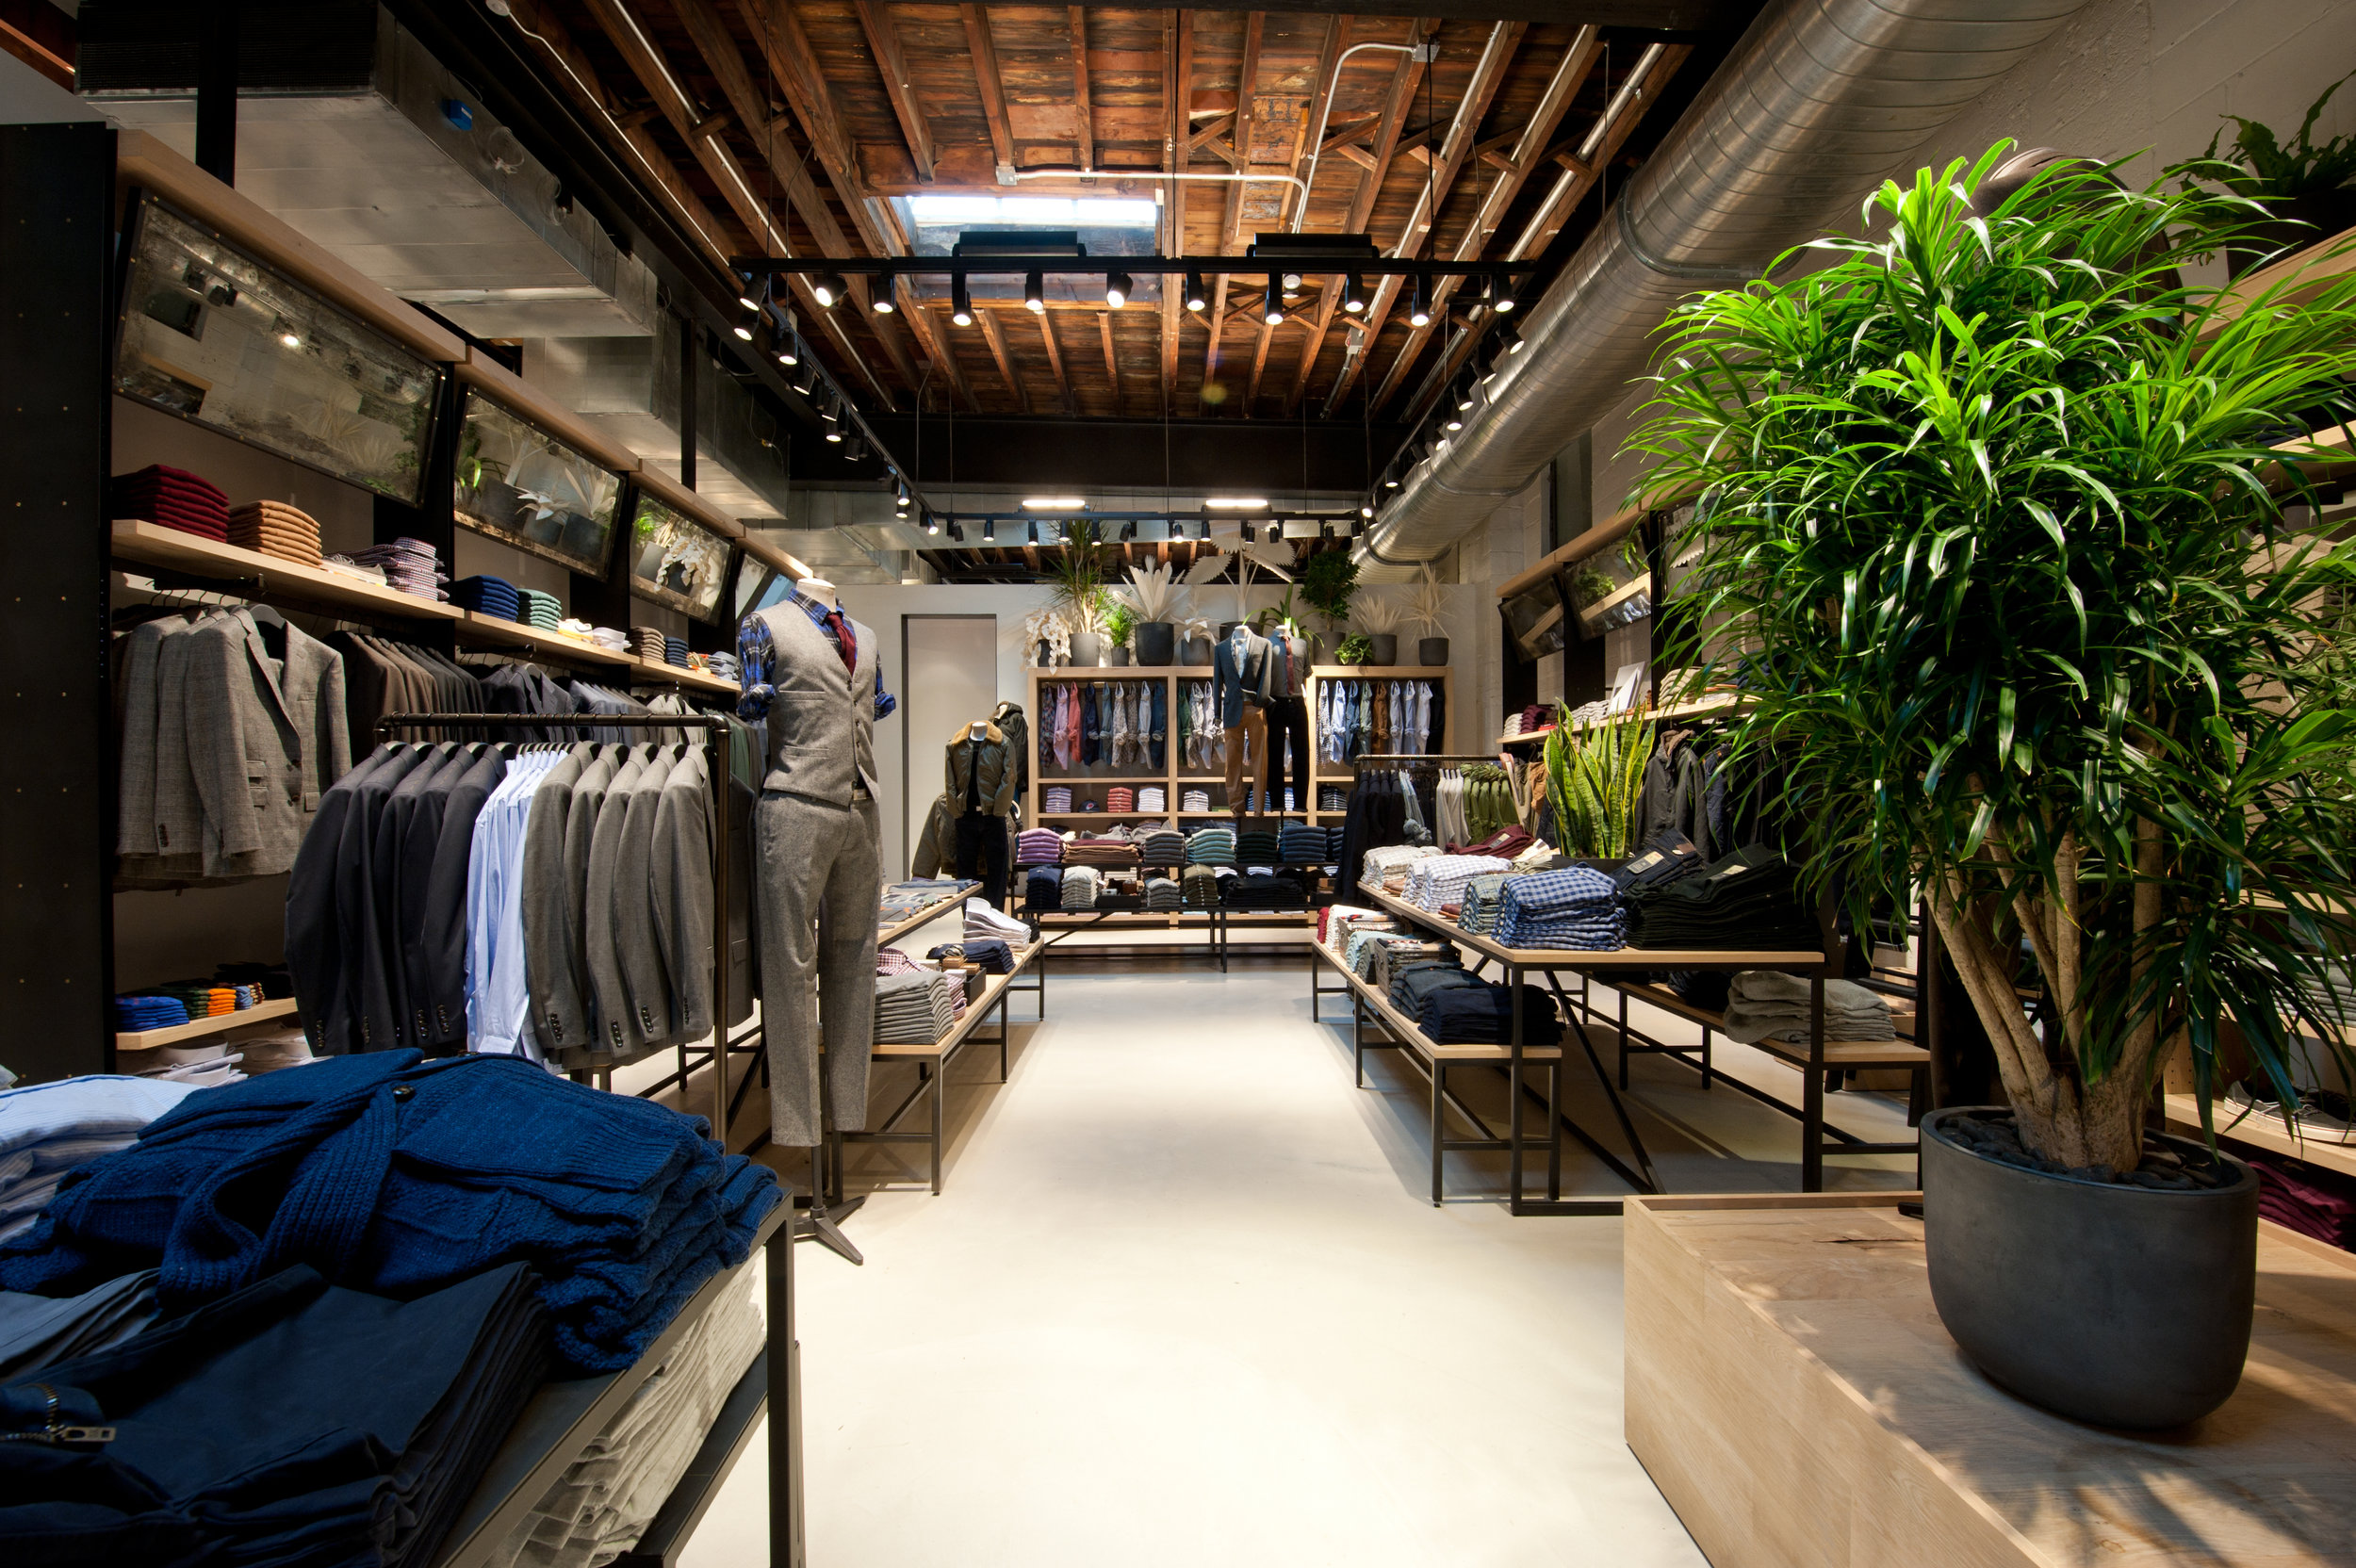 Blazers, dress shirts, and trousers on display in the contemporary designed interior of J Crew Williamsburg, located in Brooklyn. MEP provided by 2L Engineering.